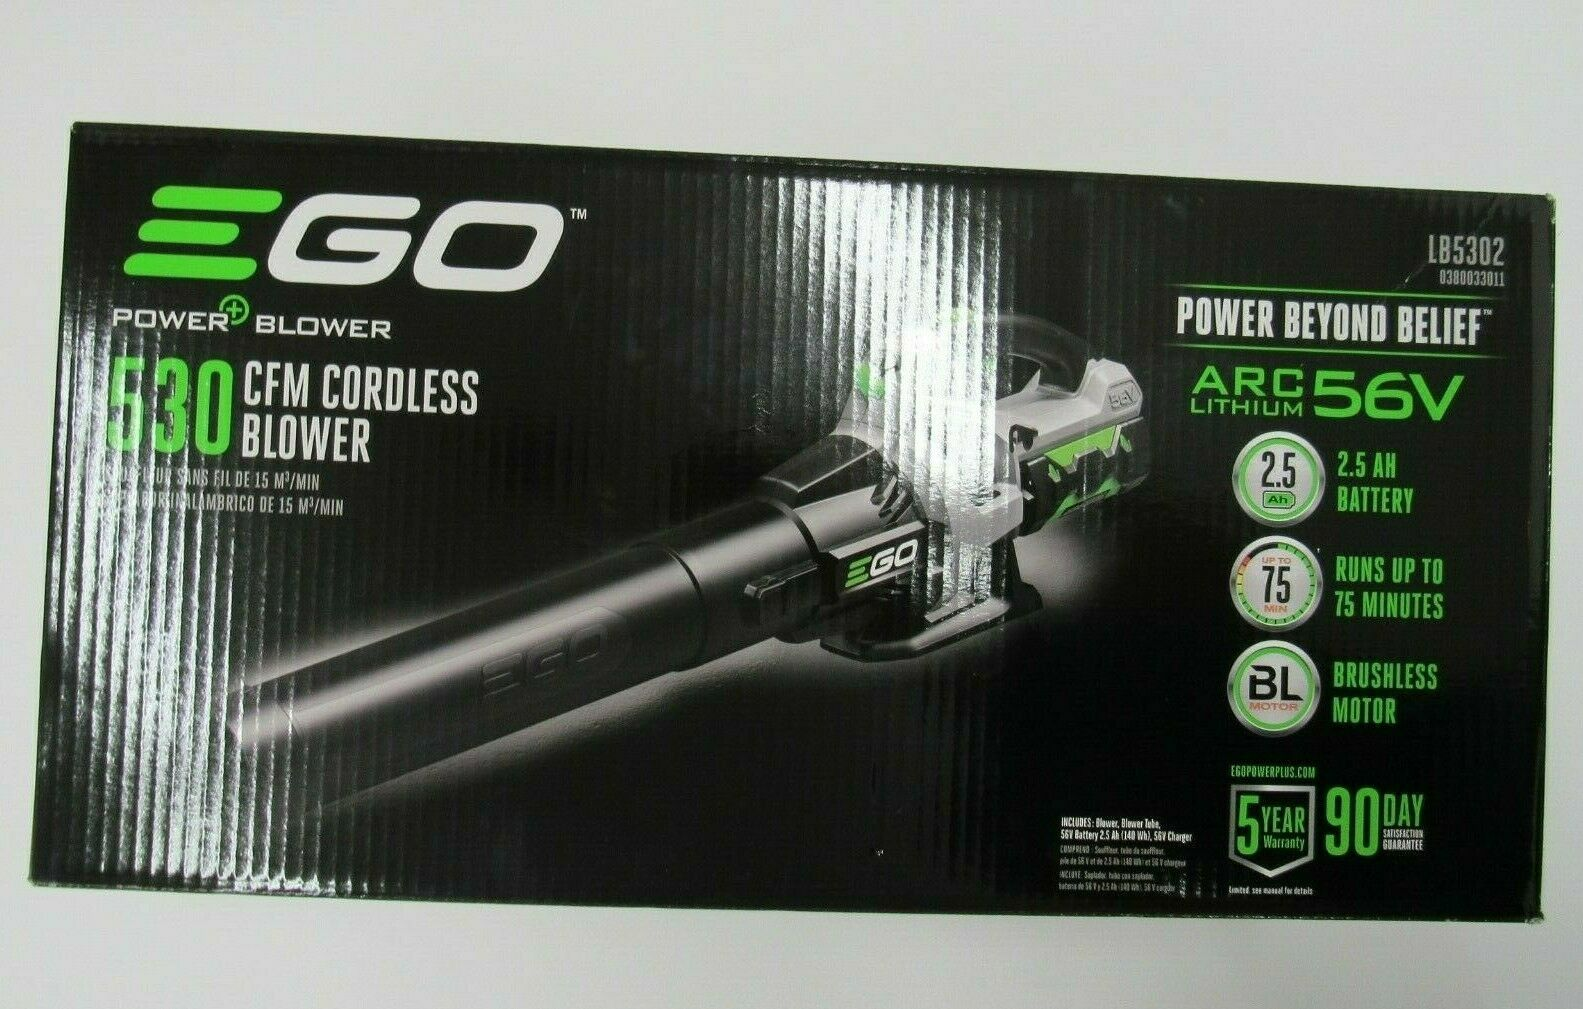 EGO 110 mph 530 CFM Variable-Speed Turbo Blower LB5302 with